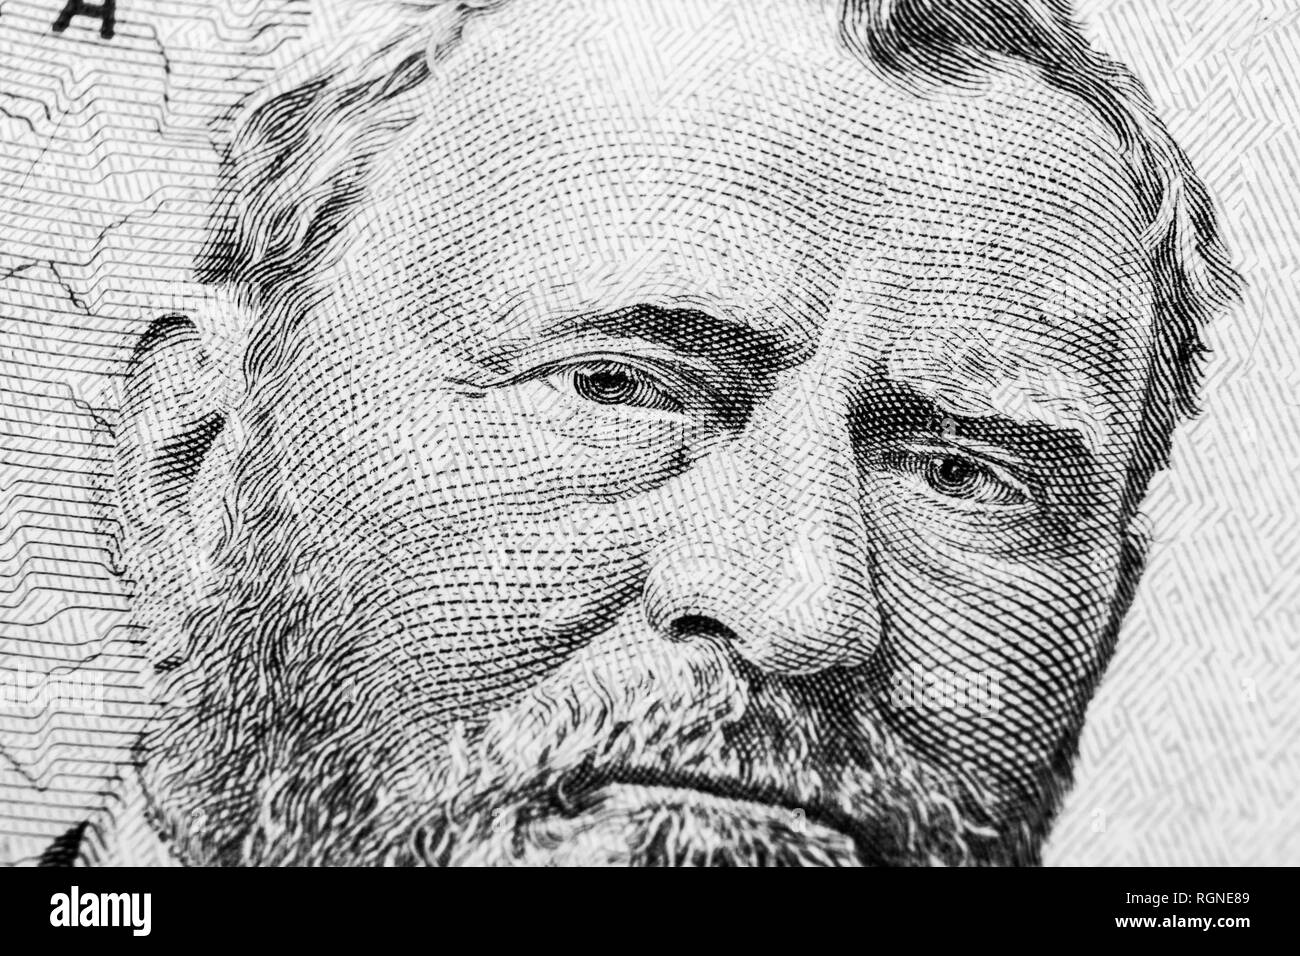 1d876a38db39 Close up view Portrait of Ulysses S. Grant on the one fifty dollar bill.